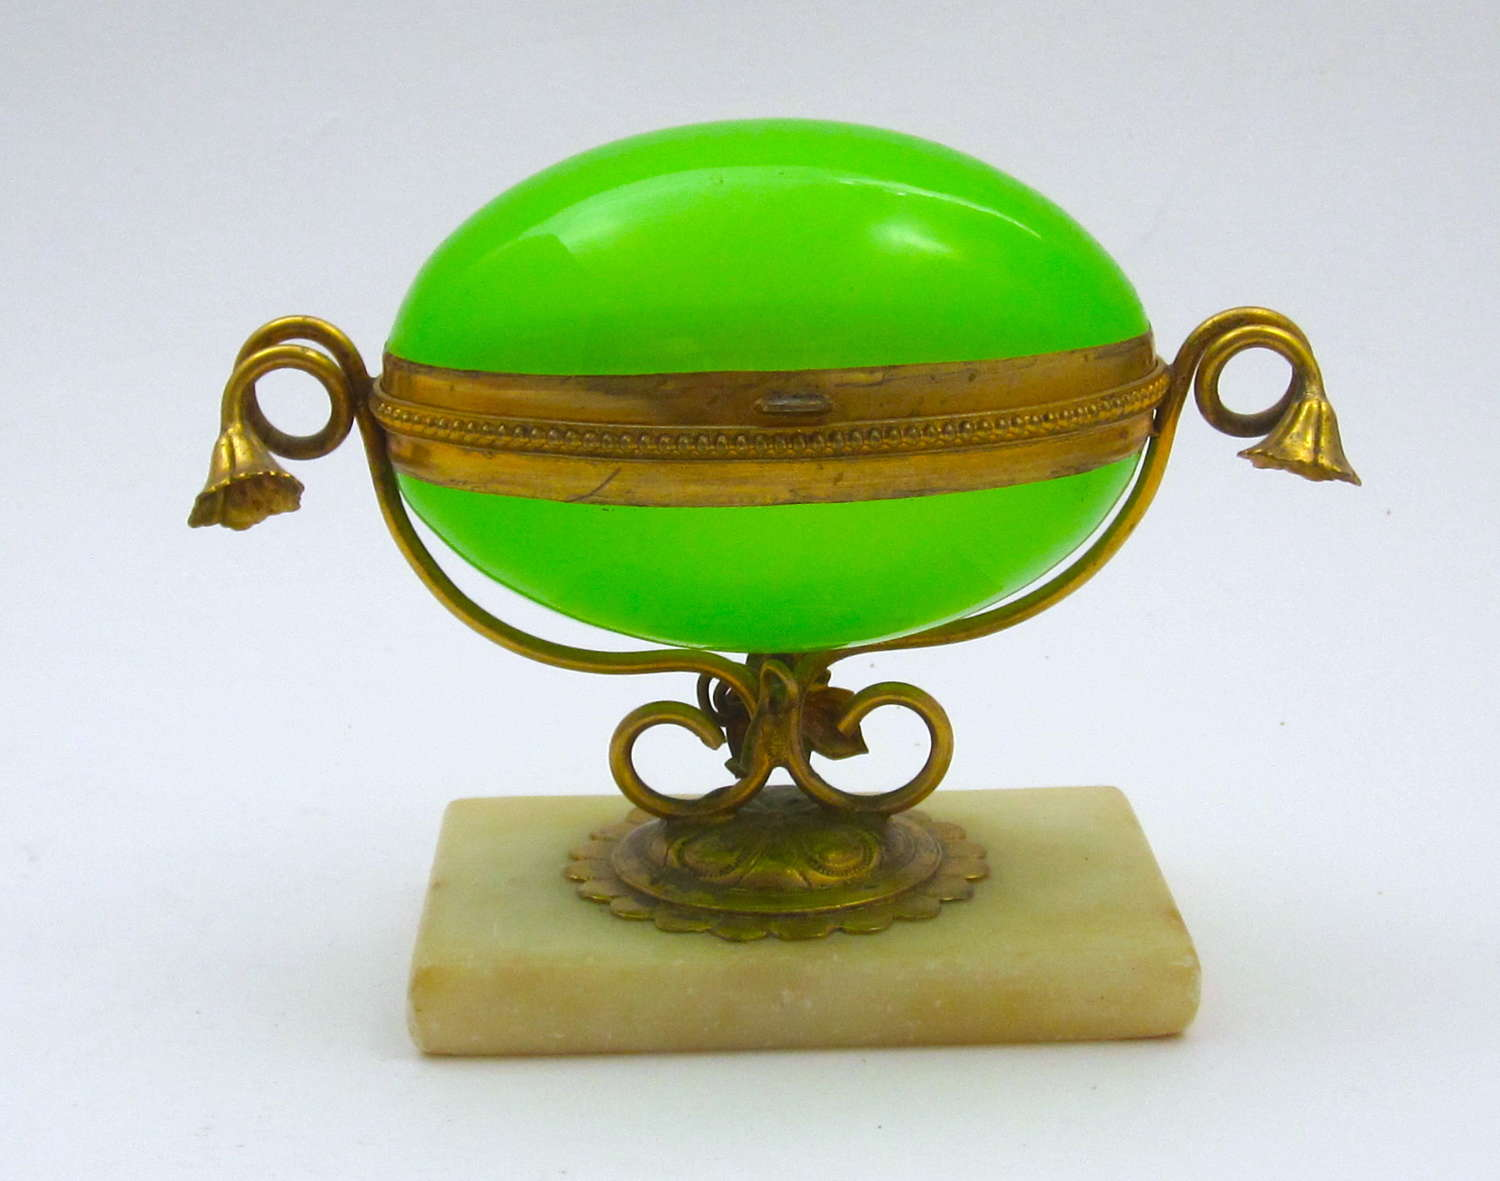 Antique French Green Opaline Glass Egg Shaped Box